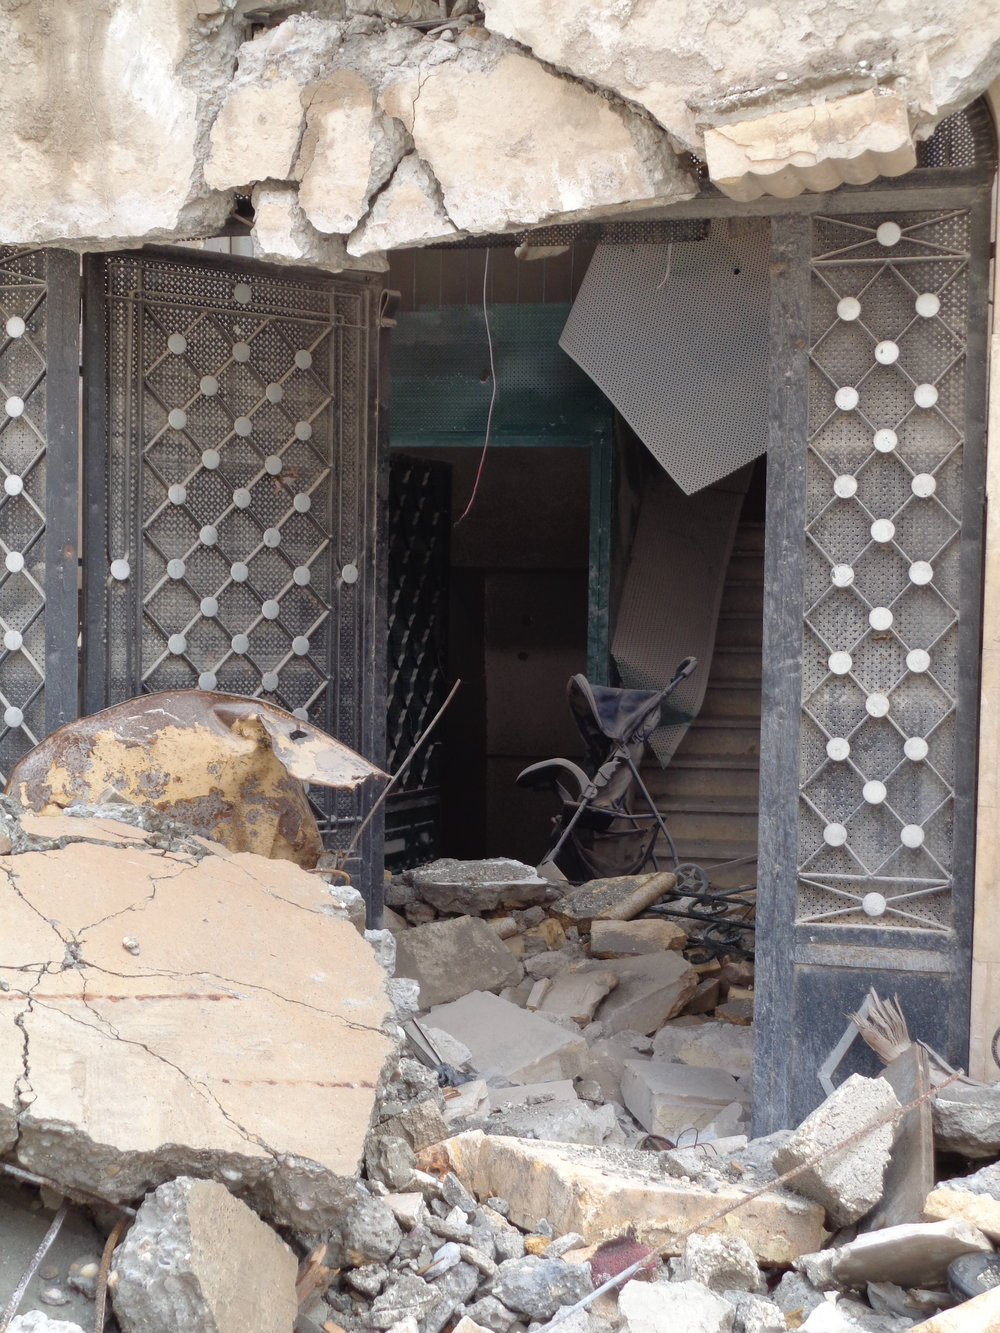 Destroyed residential building in Raqqa.